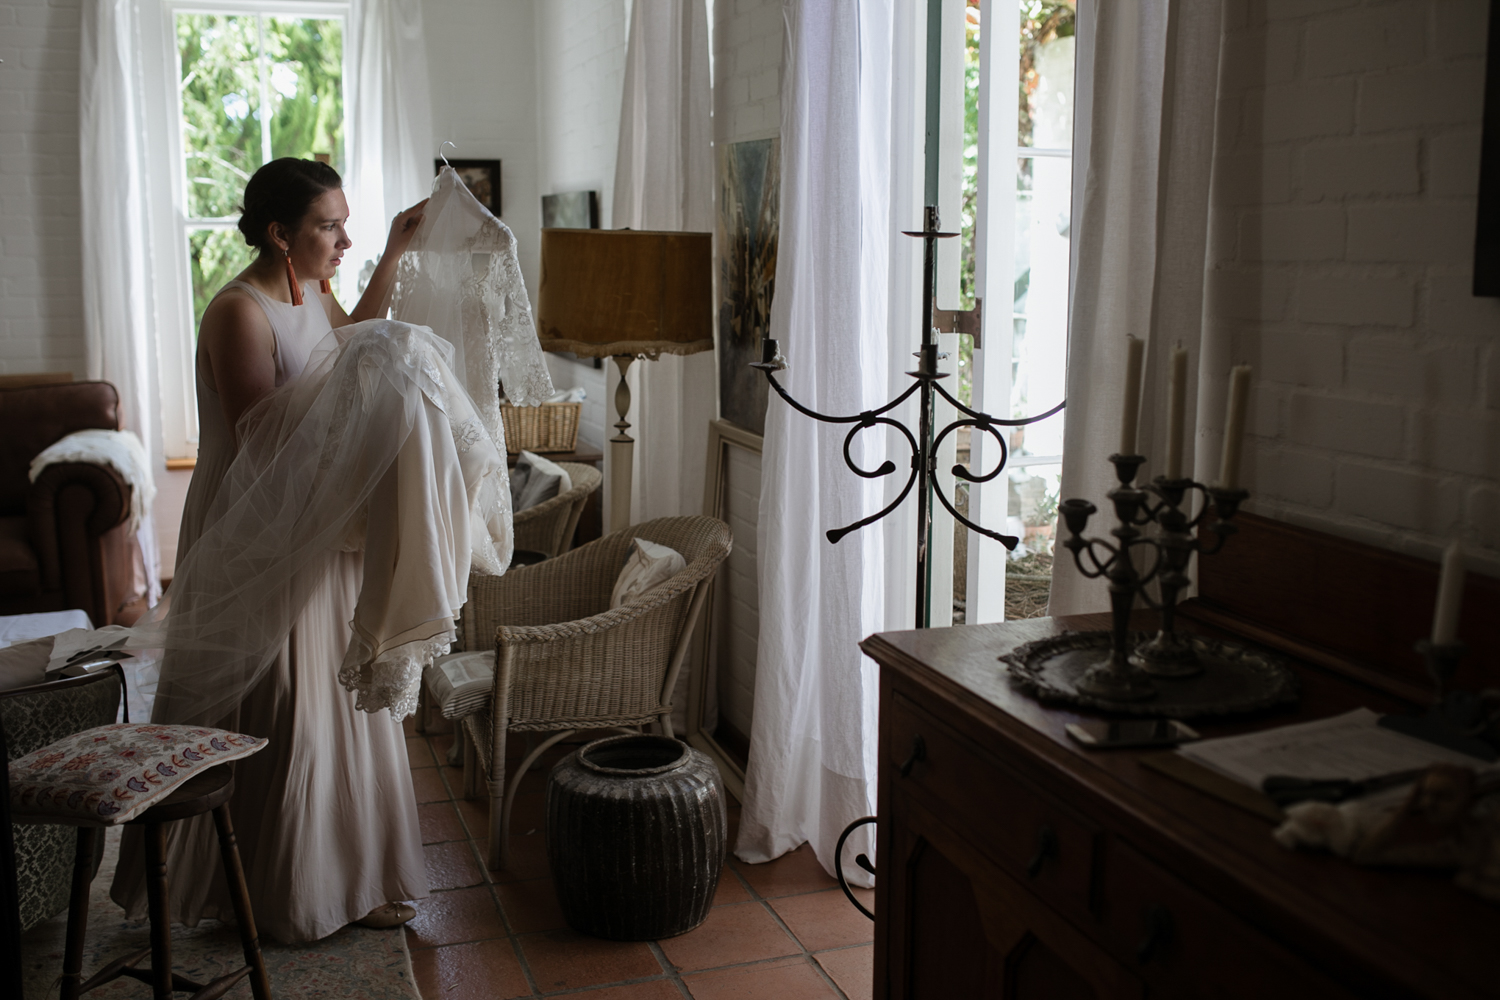 heisvisual-wedding-photographers-documentary-stellenbosch-south-africa004-3.jpg